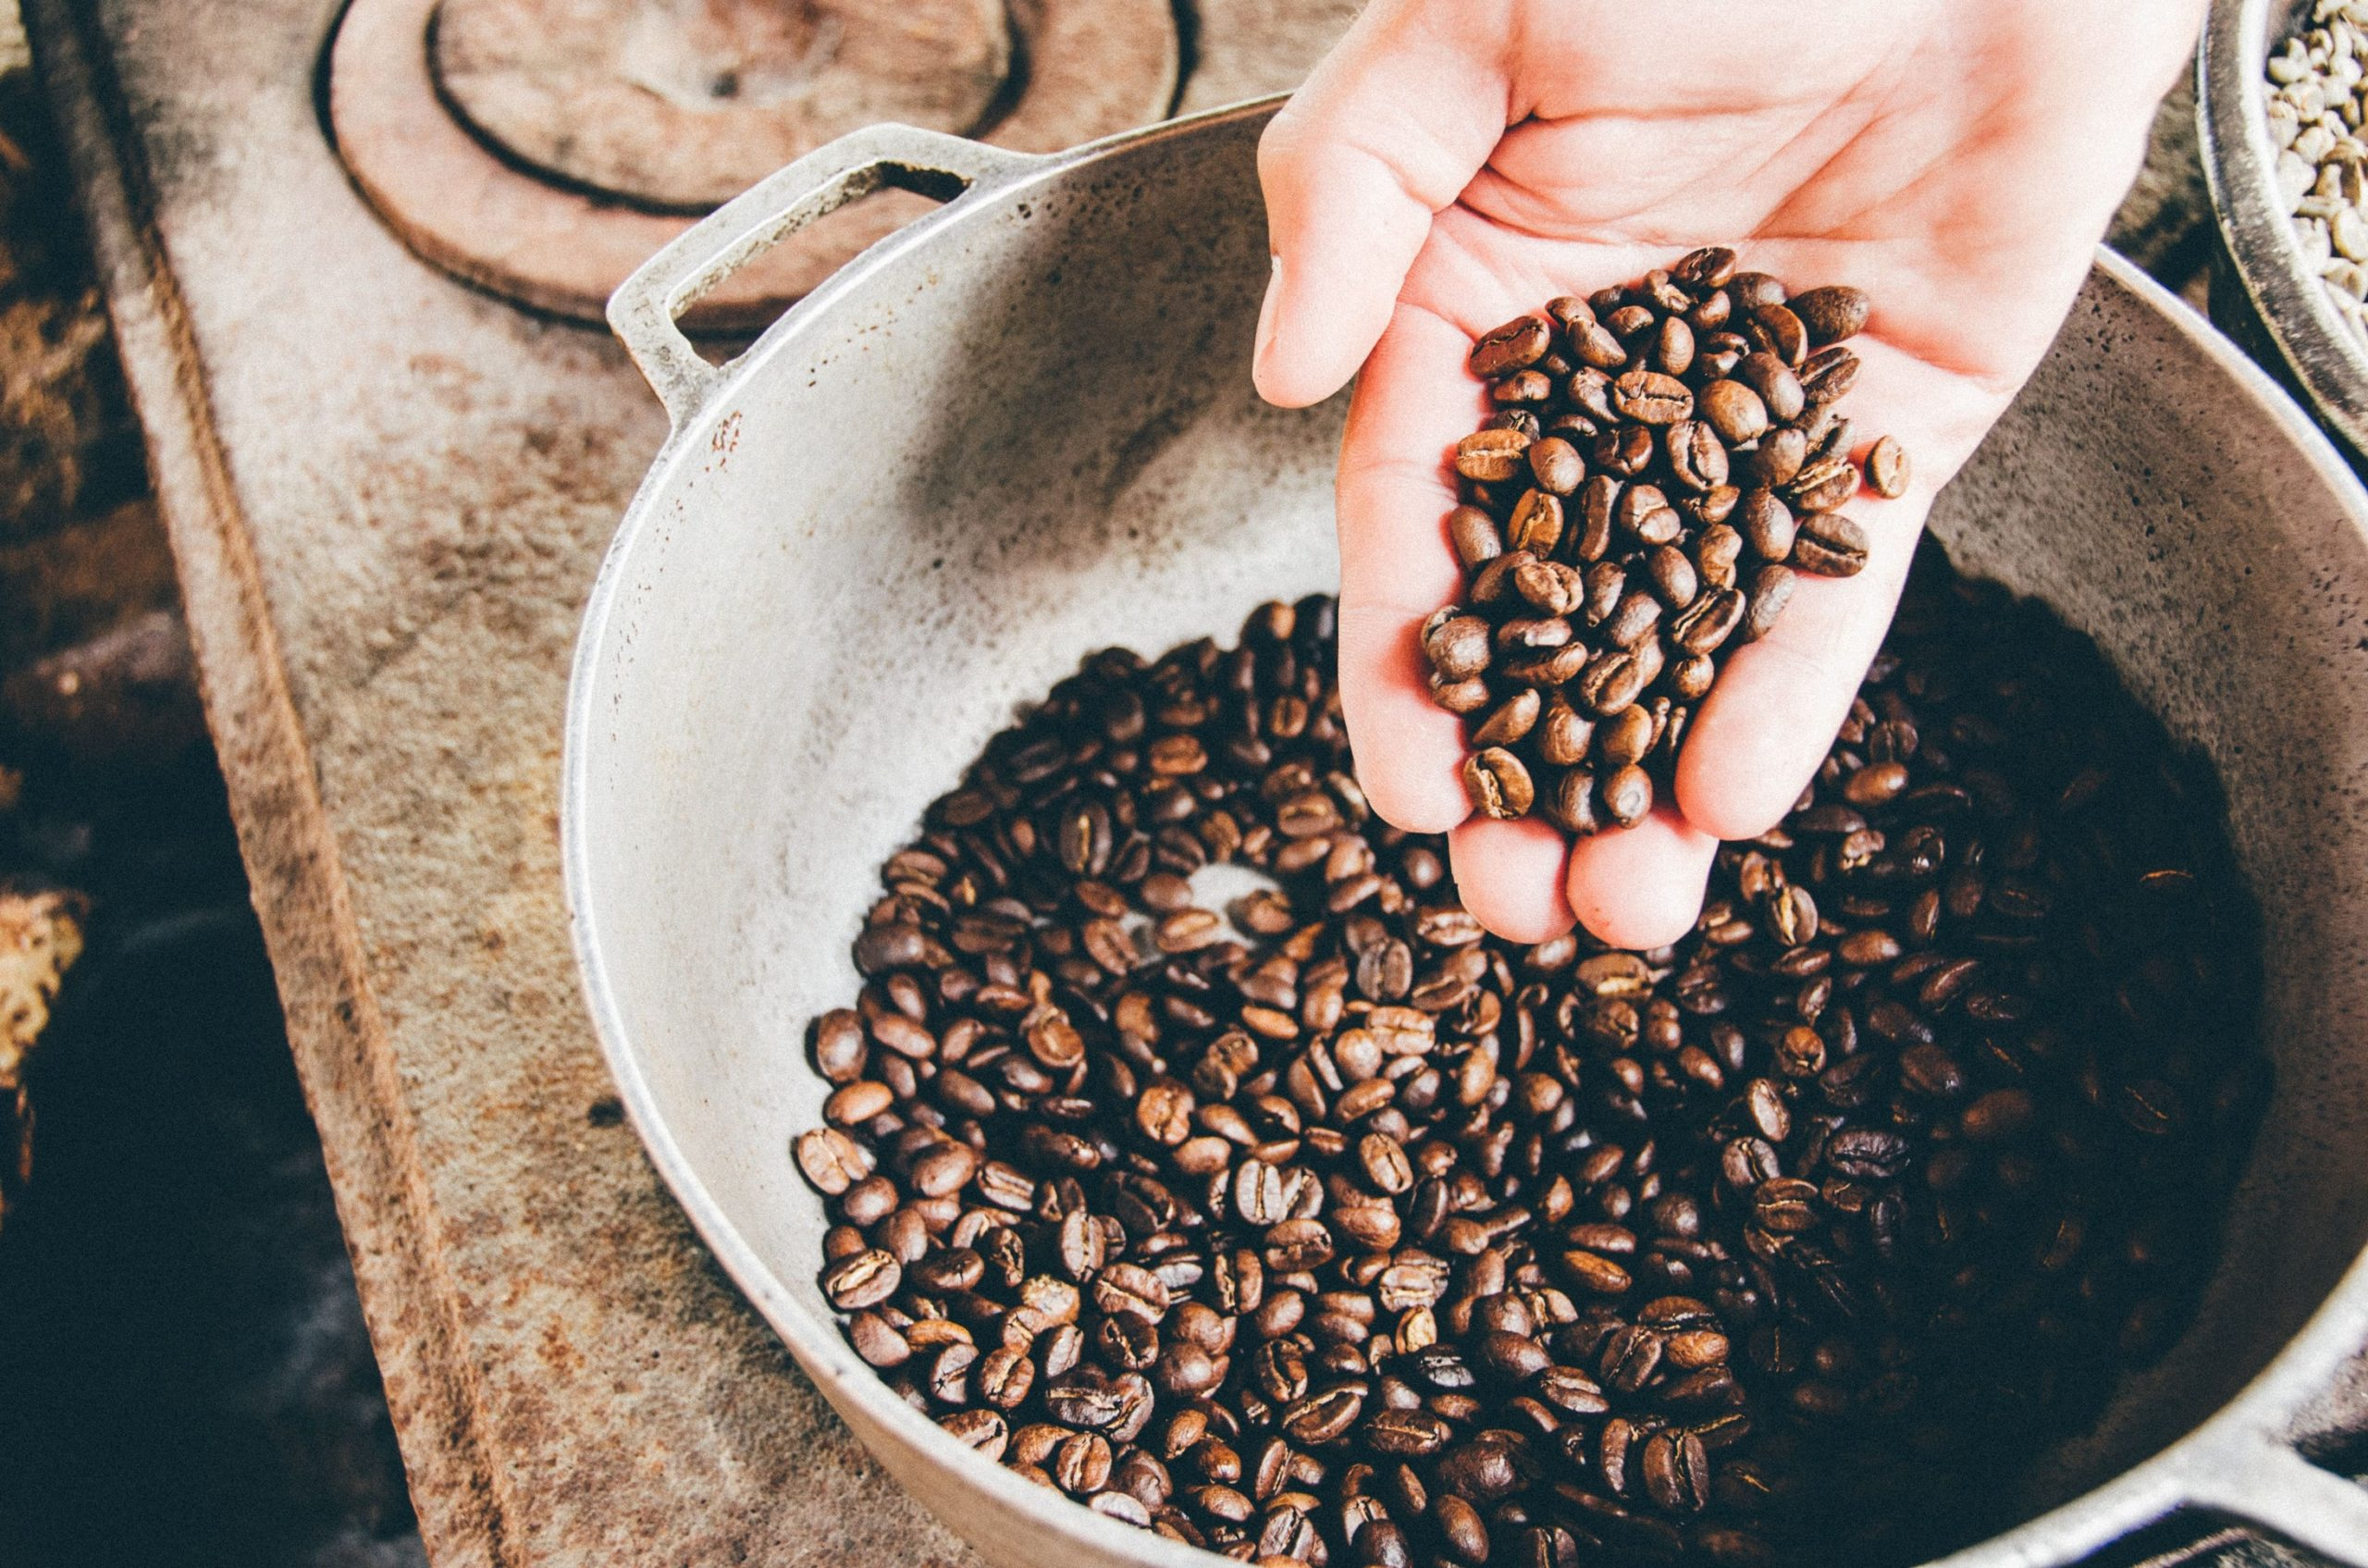 a person holding a handful of coffee beans, pouring them into a bowl below.